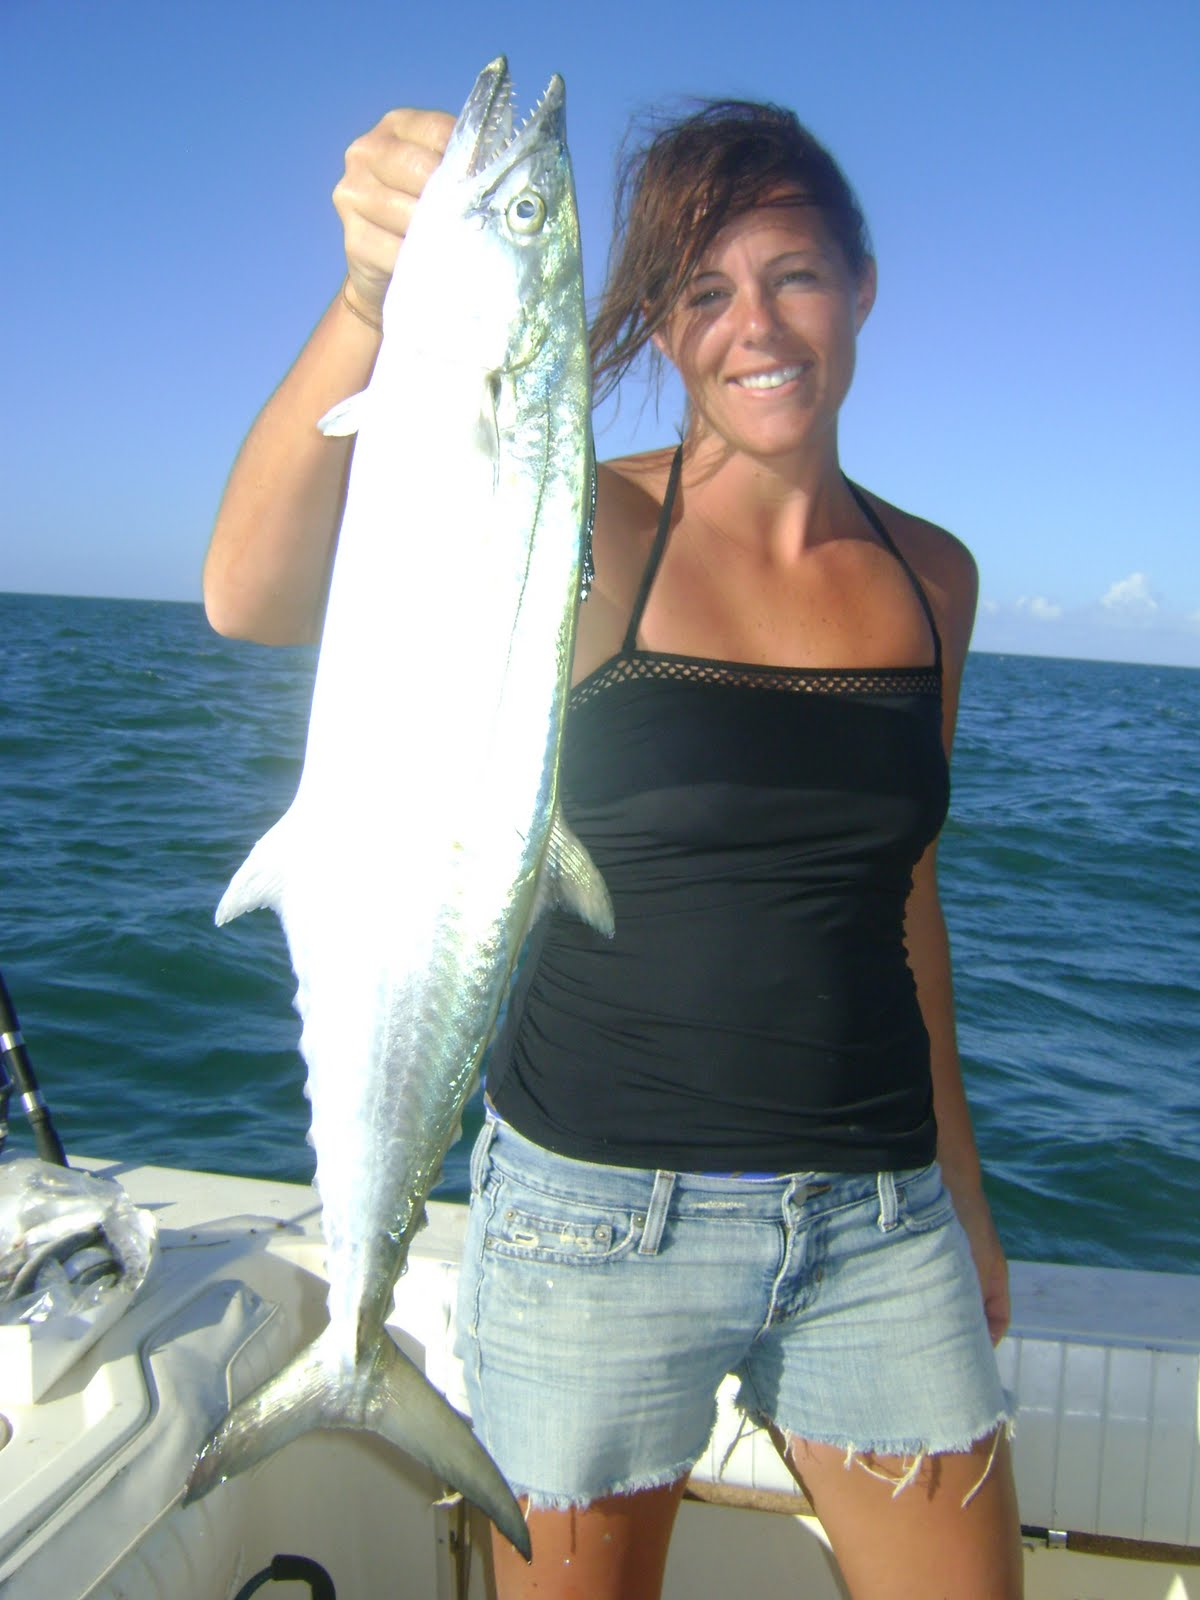 Florida fishing babes movie search engine at for Fish for girls